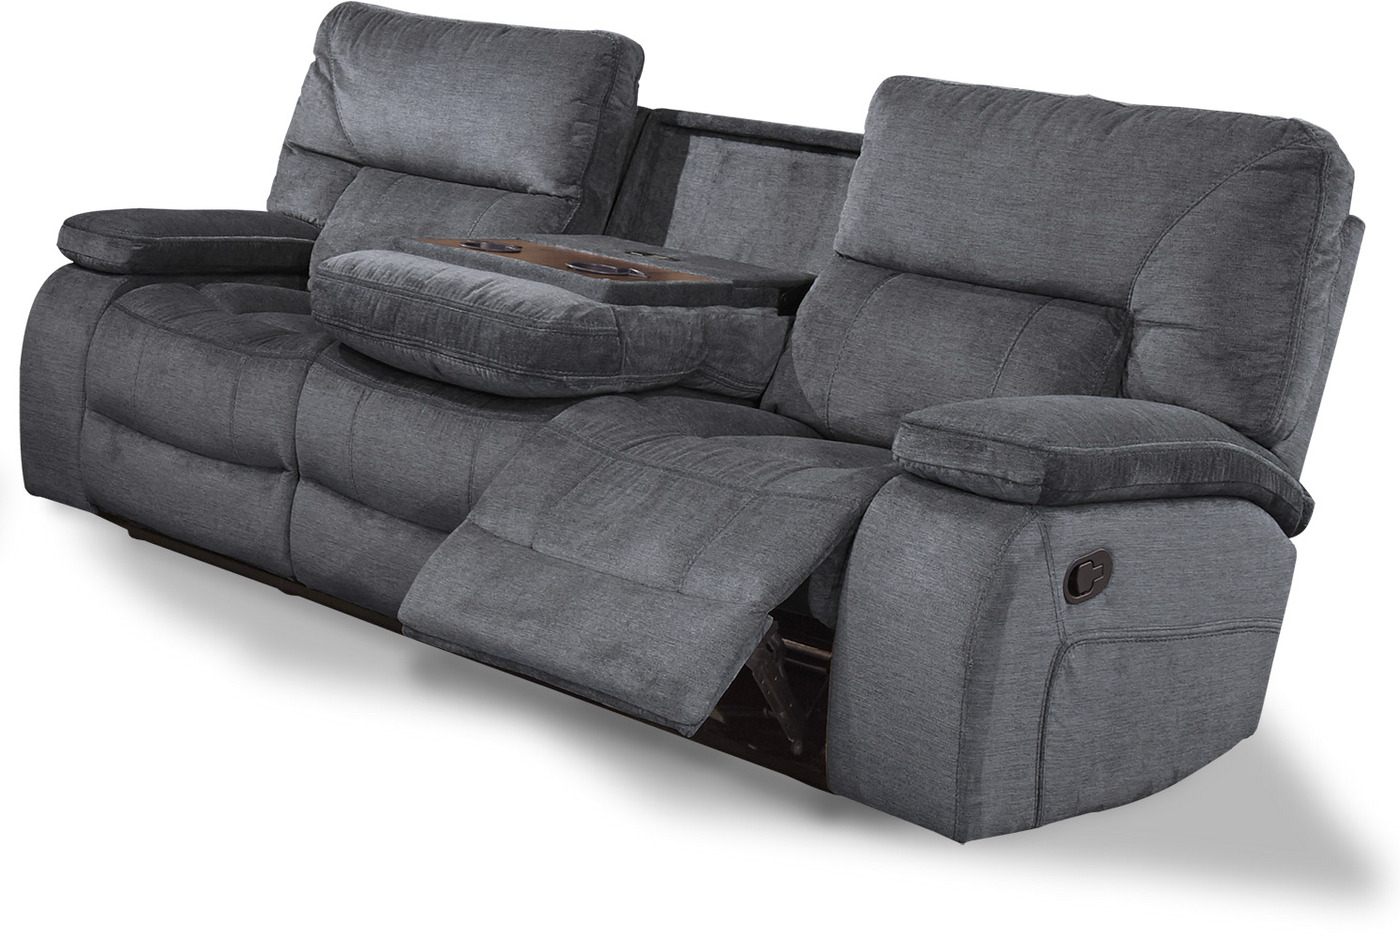 Chapman Polo Contemporary Reclining Sofa With Console And Pillow Top Arms